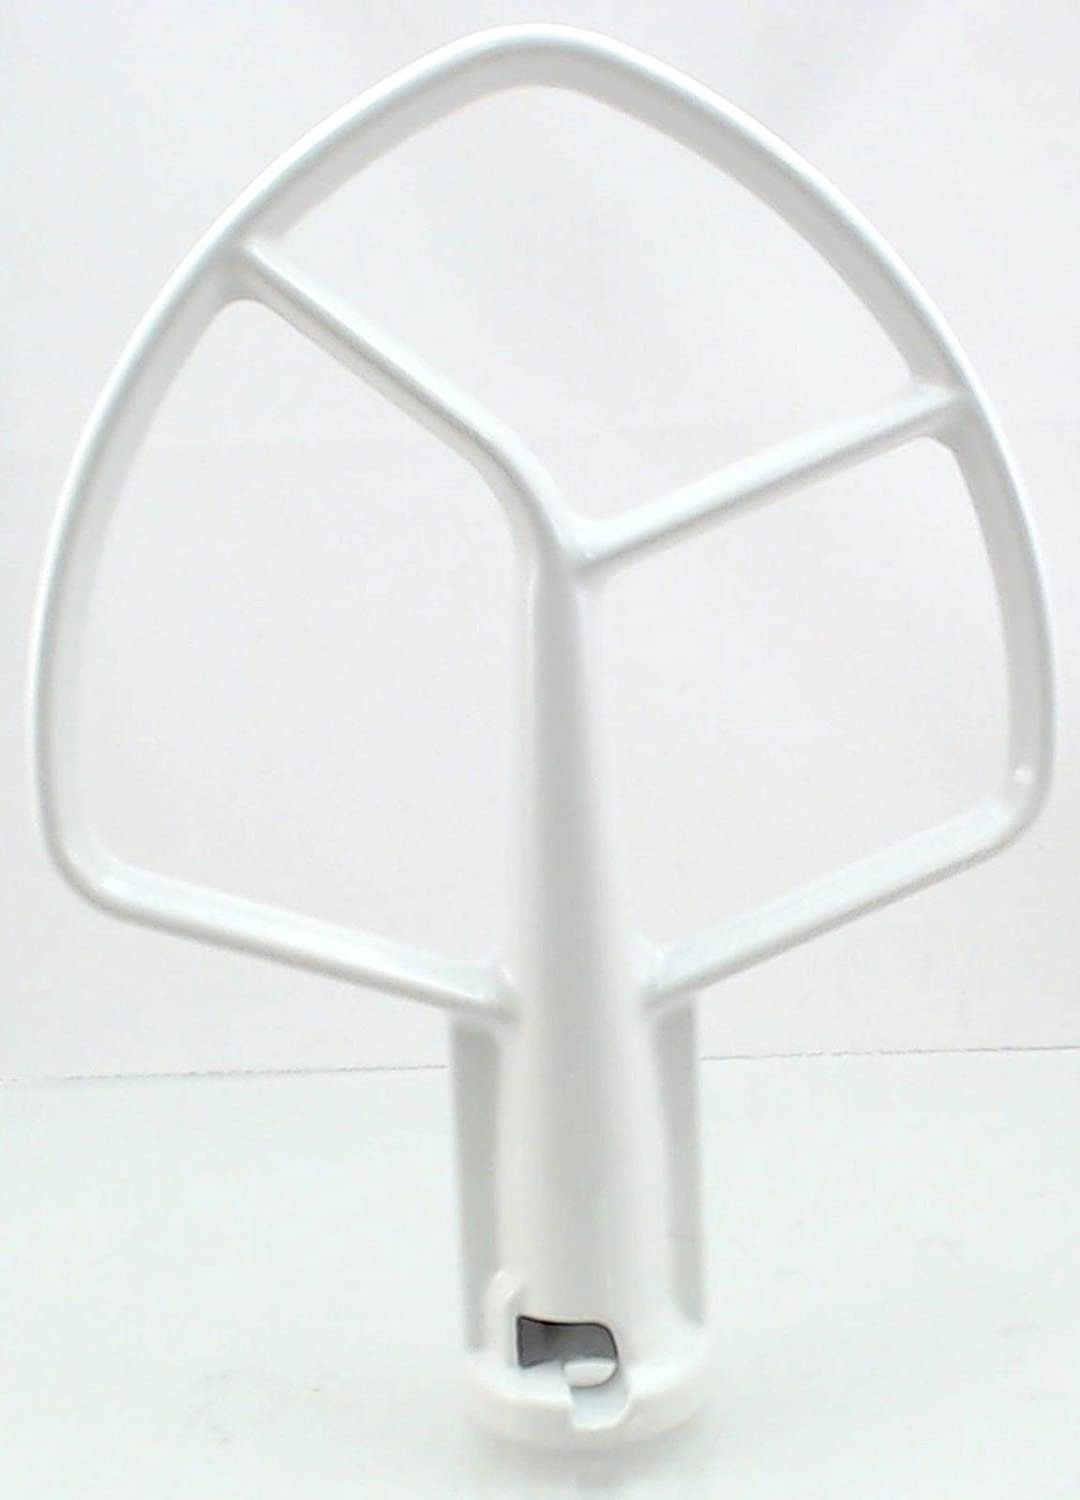 Stand Mixer 5 QT Coated Flat Beater for KitchenAid, PS983355, K5AB, SAW10807813